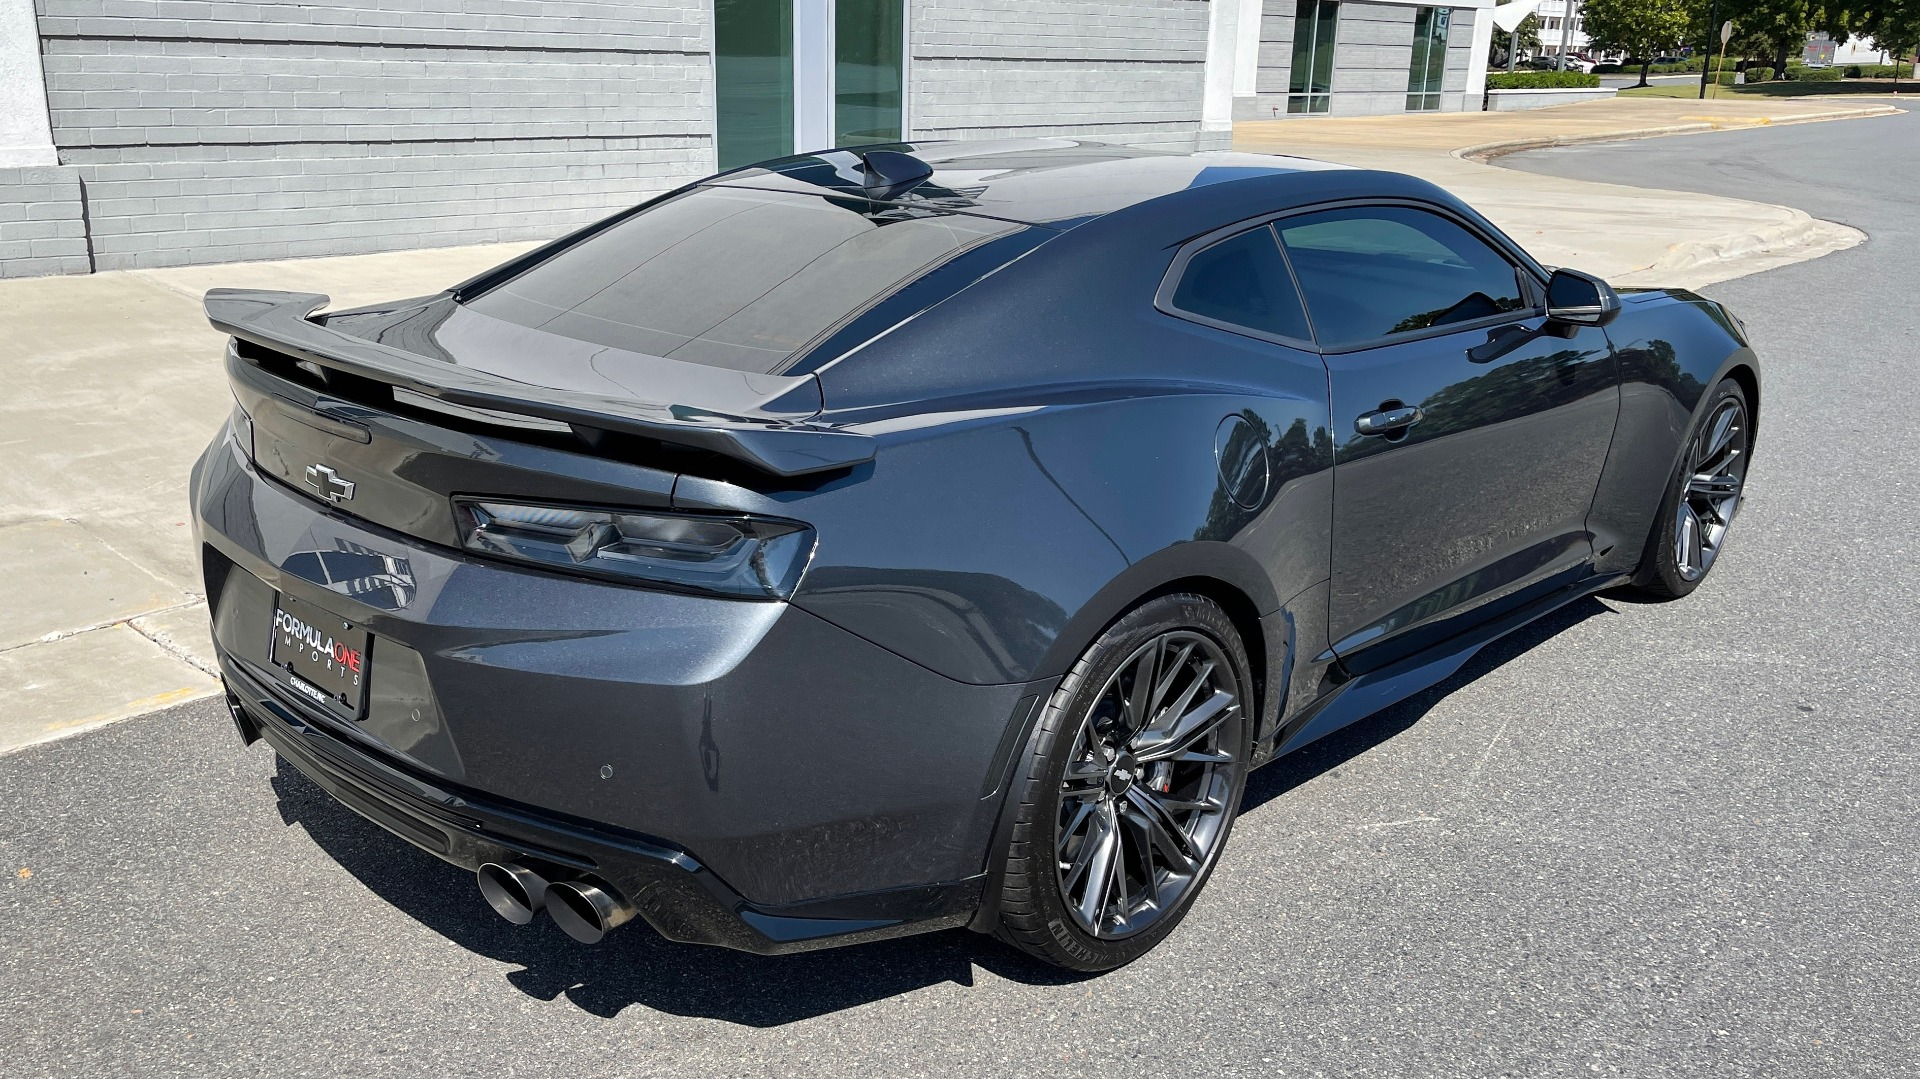 Used 2018 Chevrolet CAMARO ZL1 SUPERCHARGED COUPE 850HP / 10-SPD AUTO / NAV / BOSE / REARVIEW for sale $59,995 at Formula Imports in Charlotte NC 28227 2